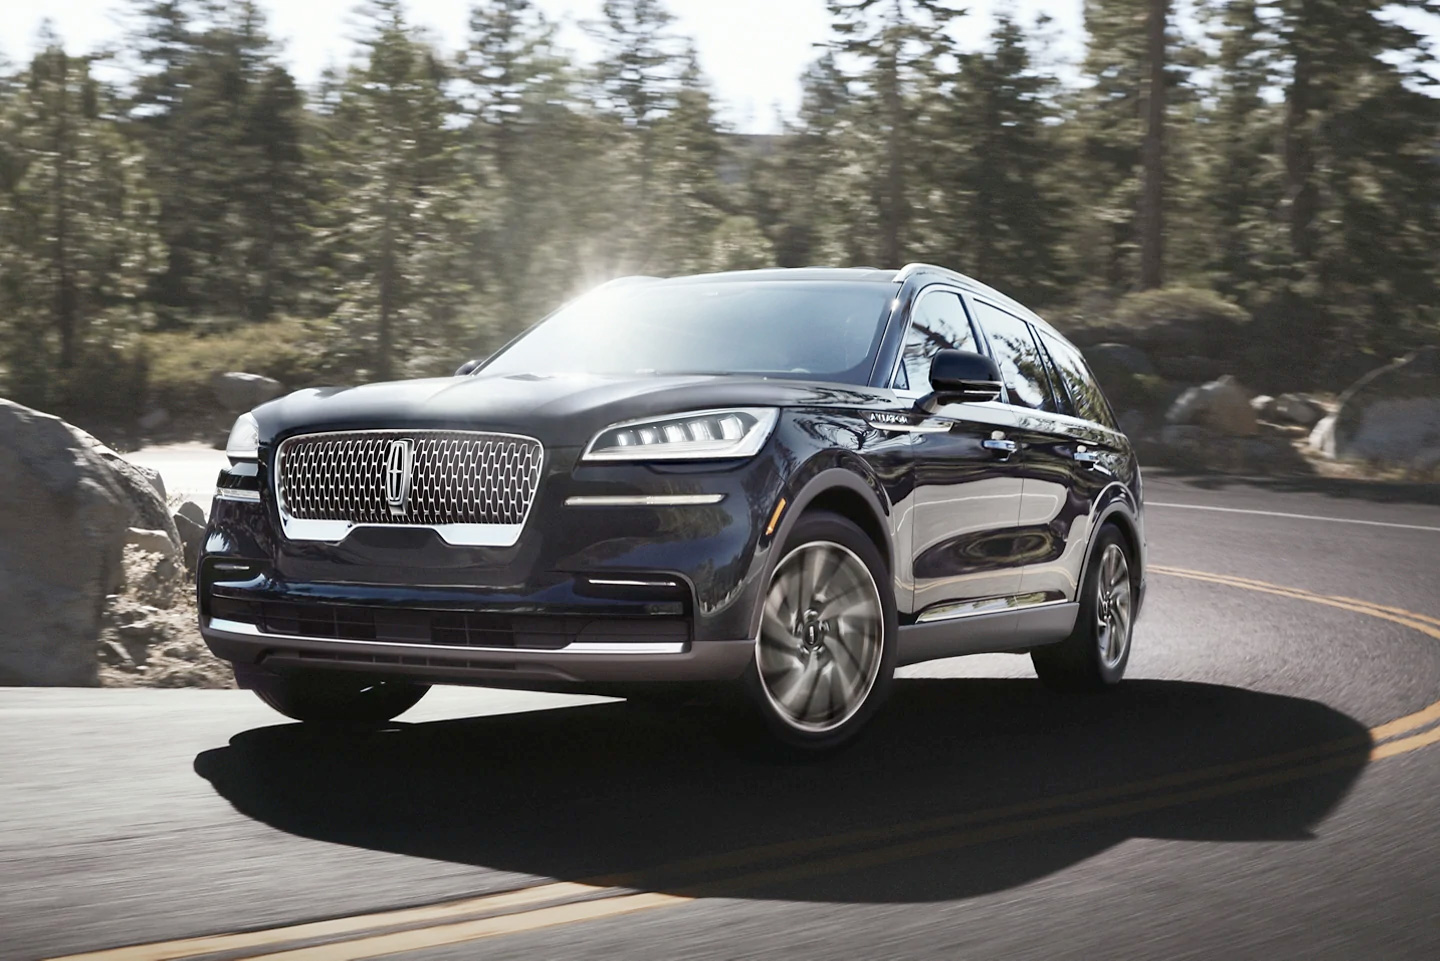 2021 Lincoln Aviator driving on a mountainous road